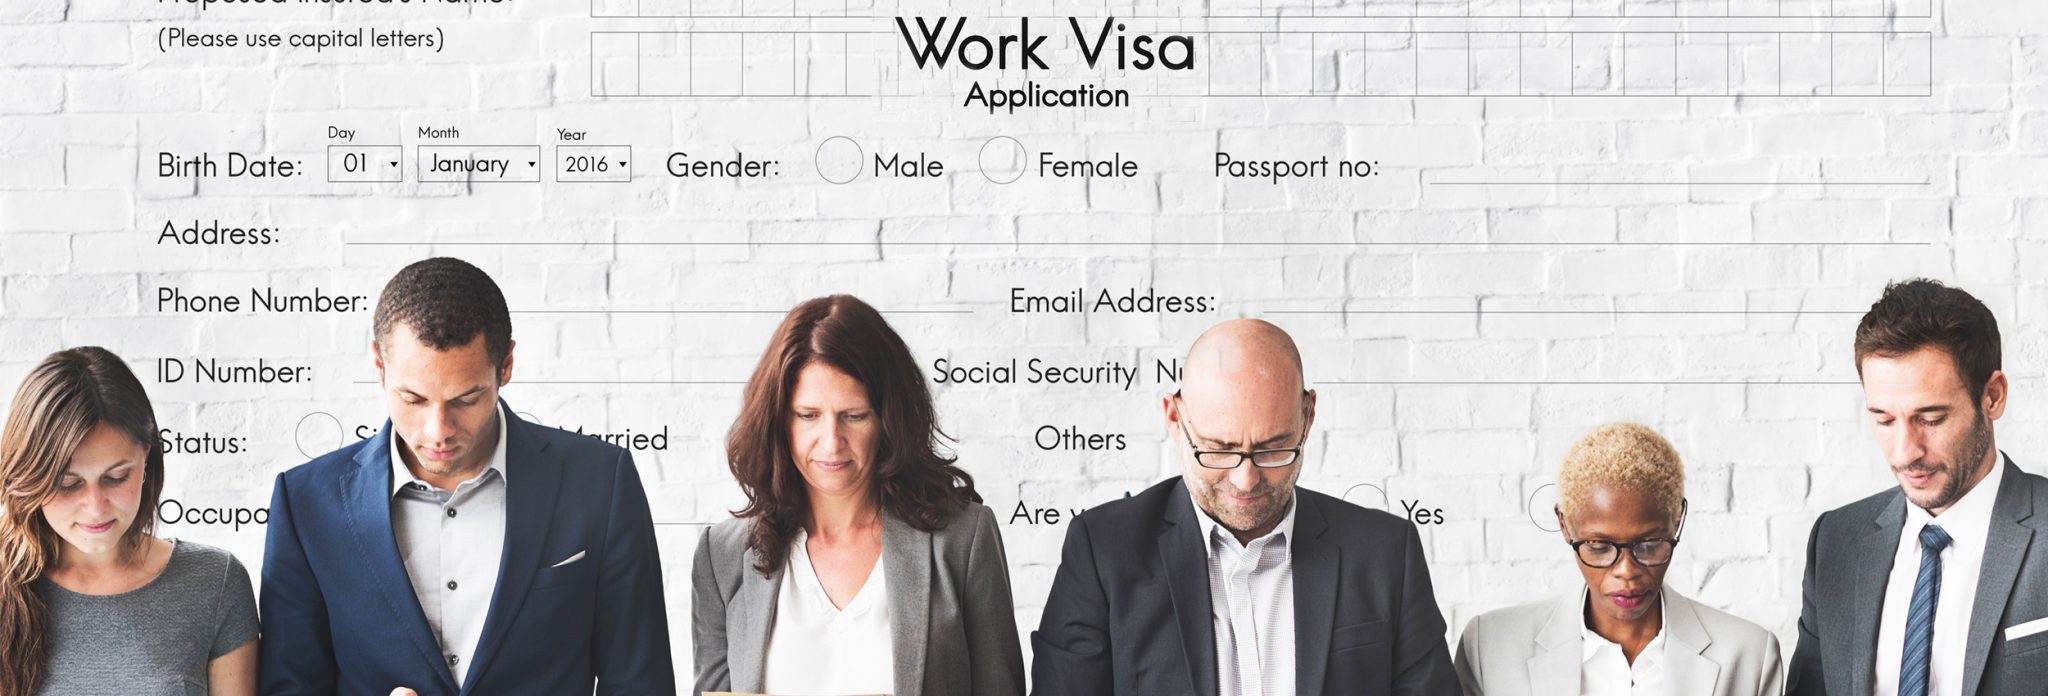 Image related to Work Visa